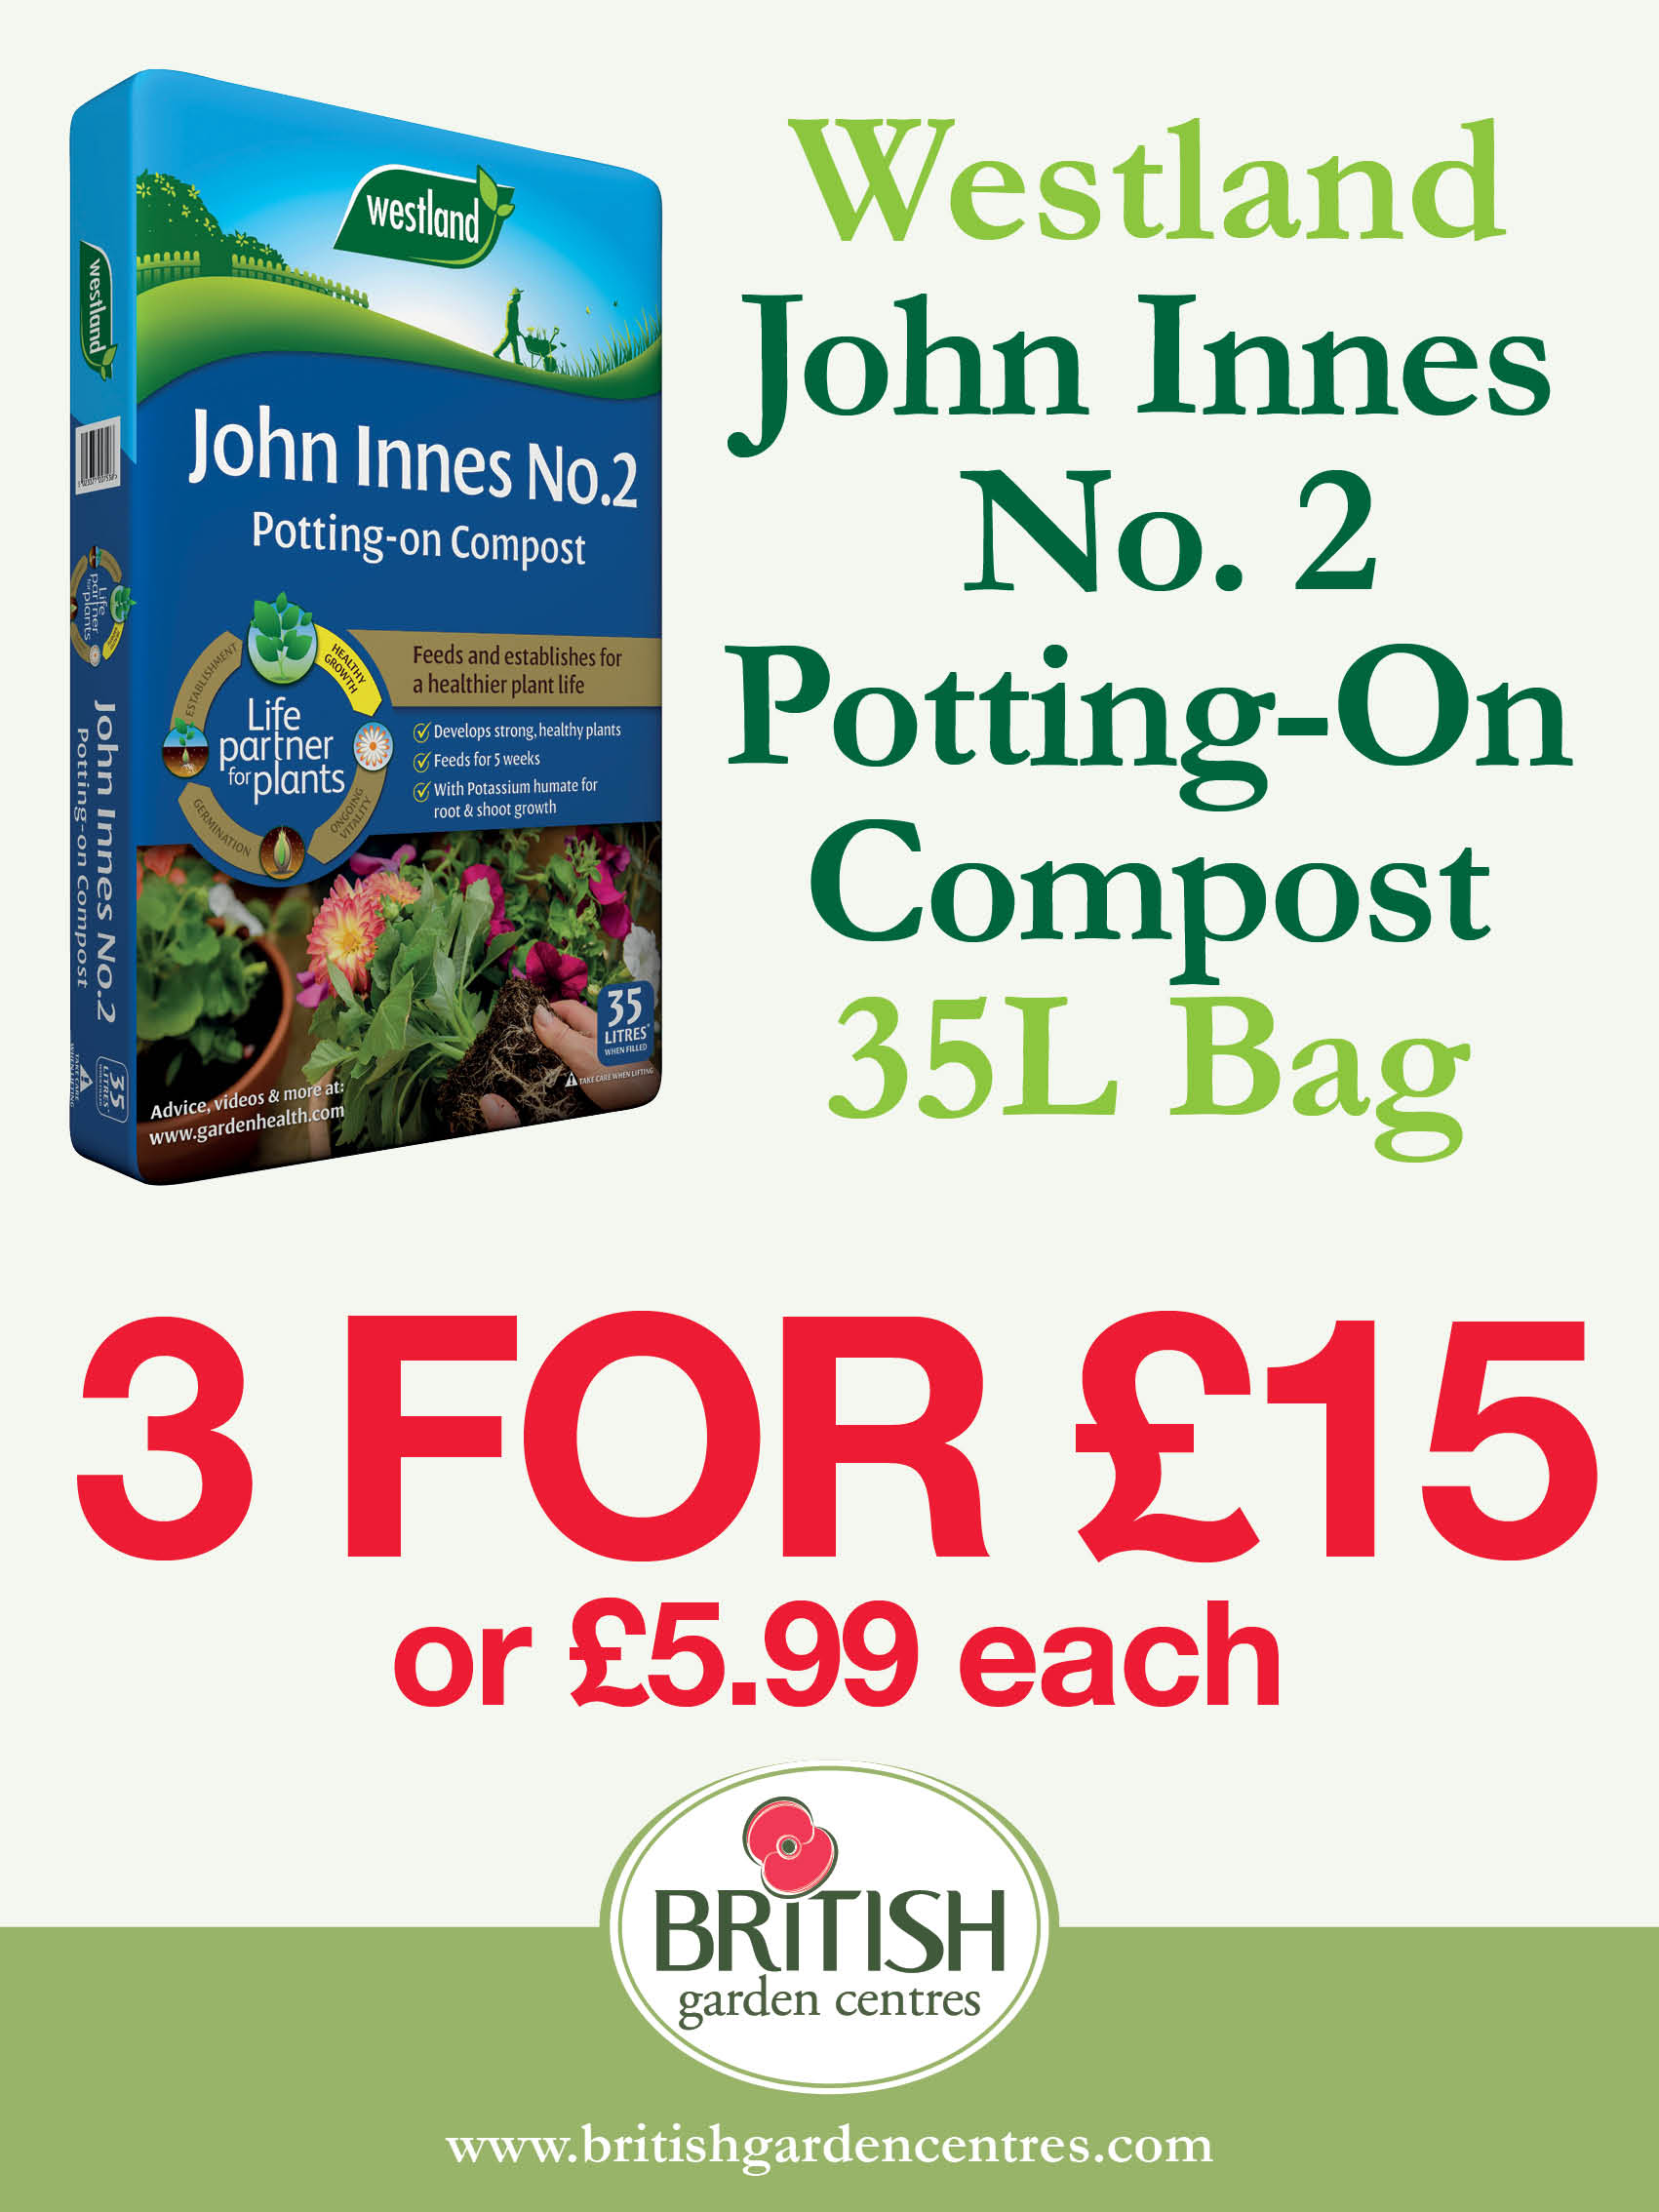 John Innes No.2 Potting On Compost 35L